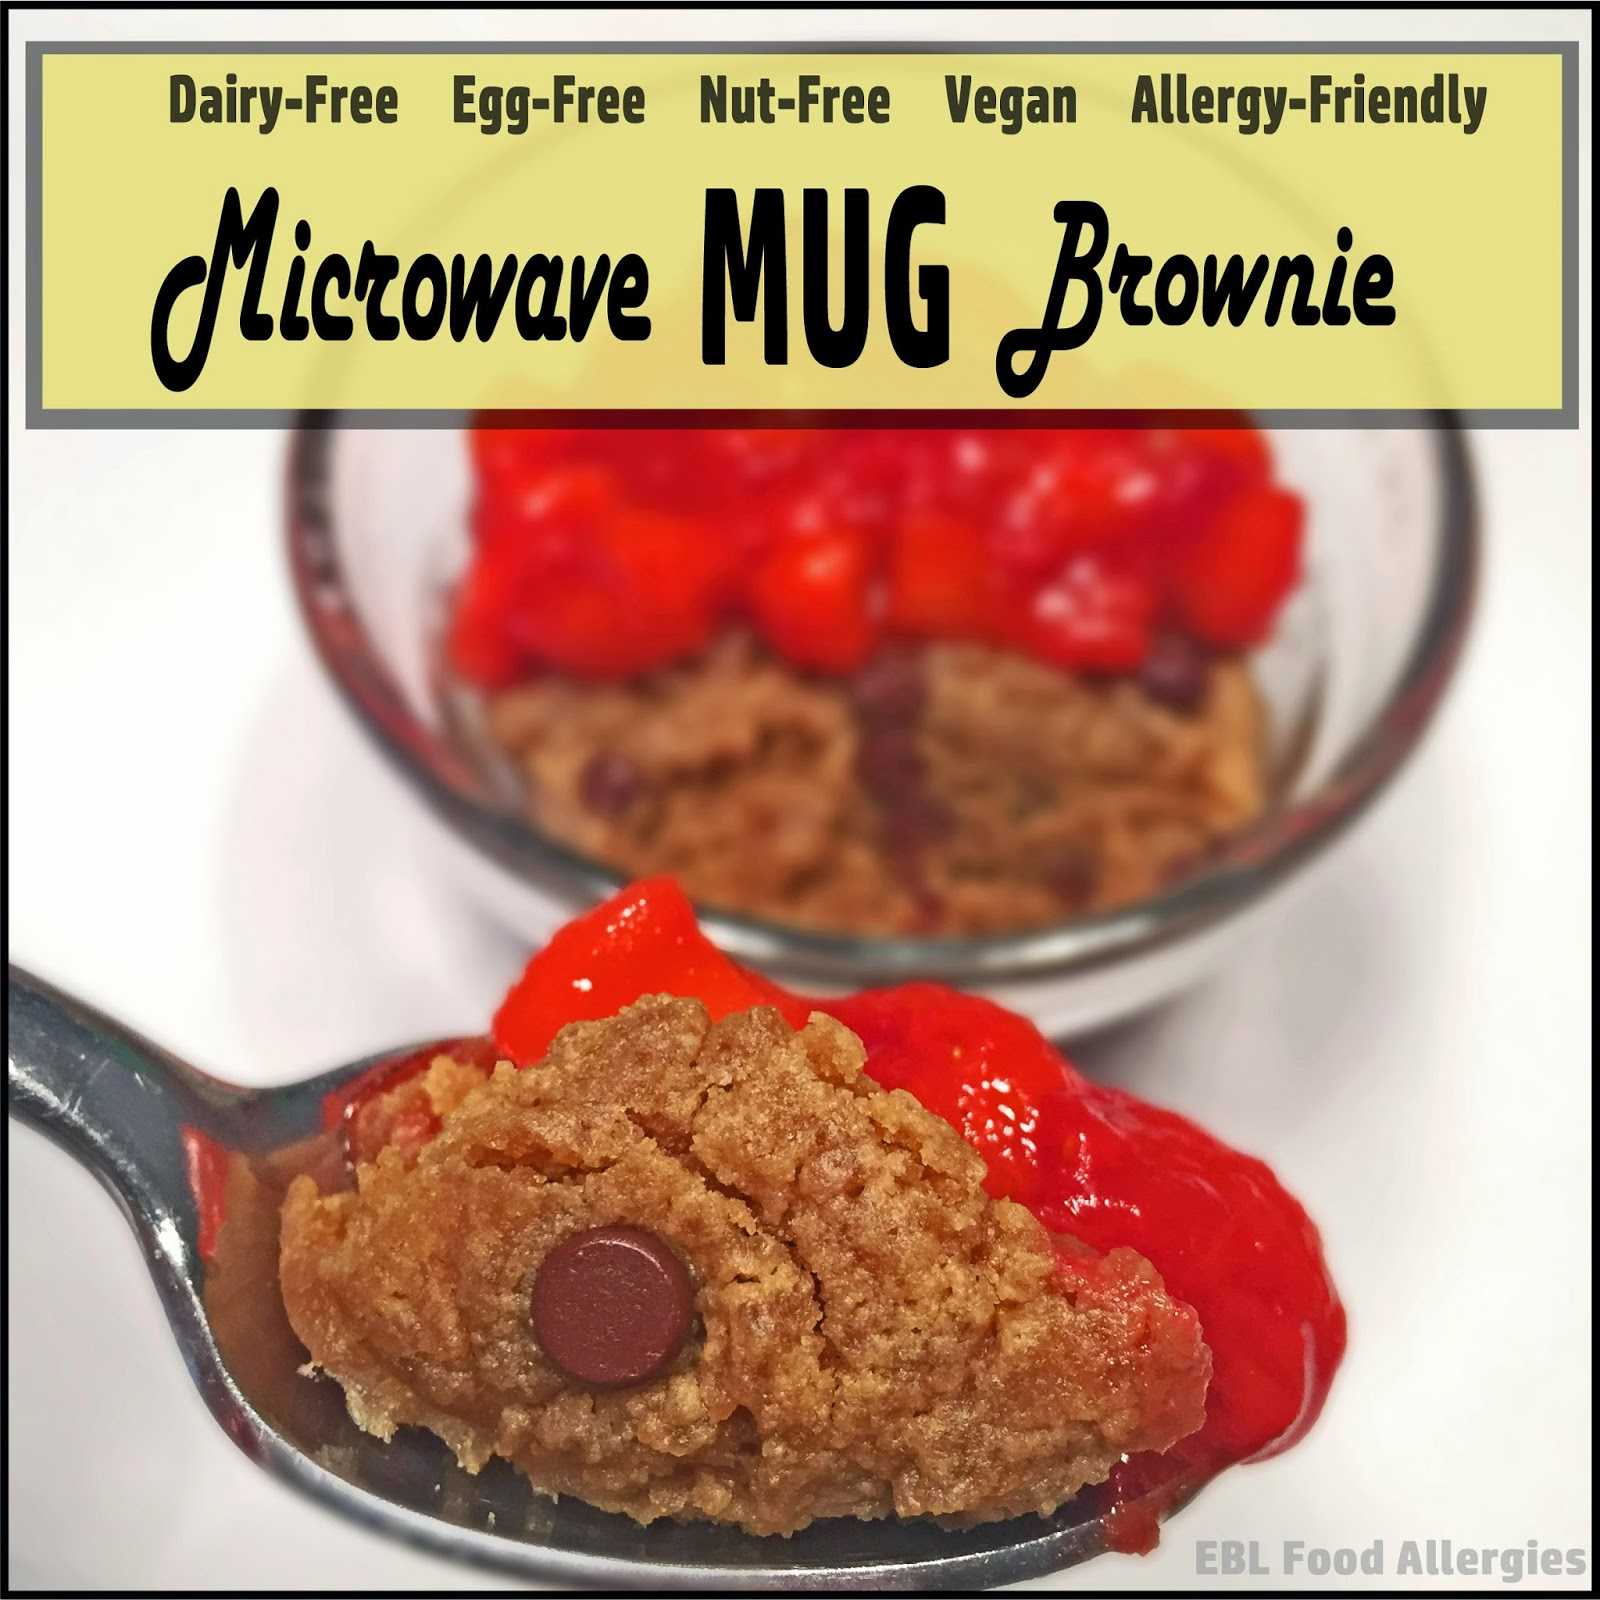 Allergy-Friendly Vegan MUG Brownie